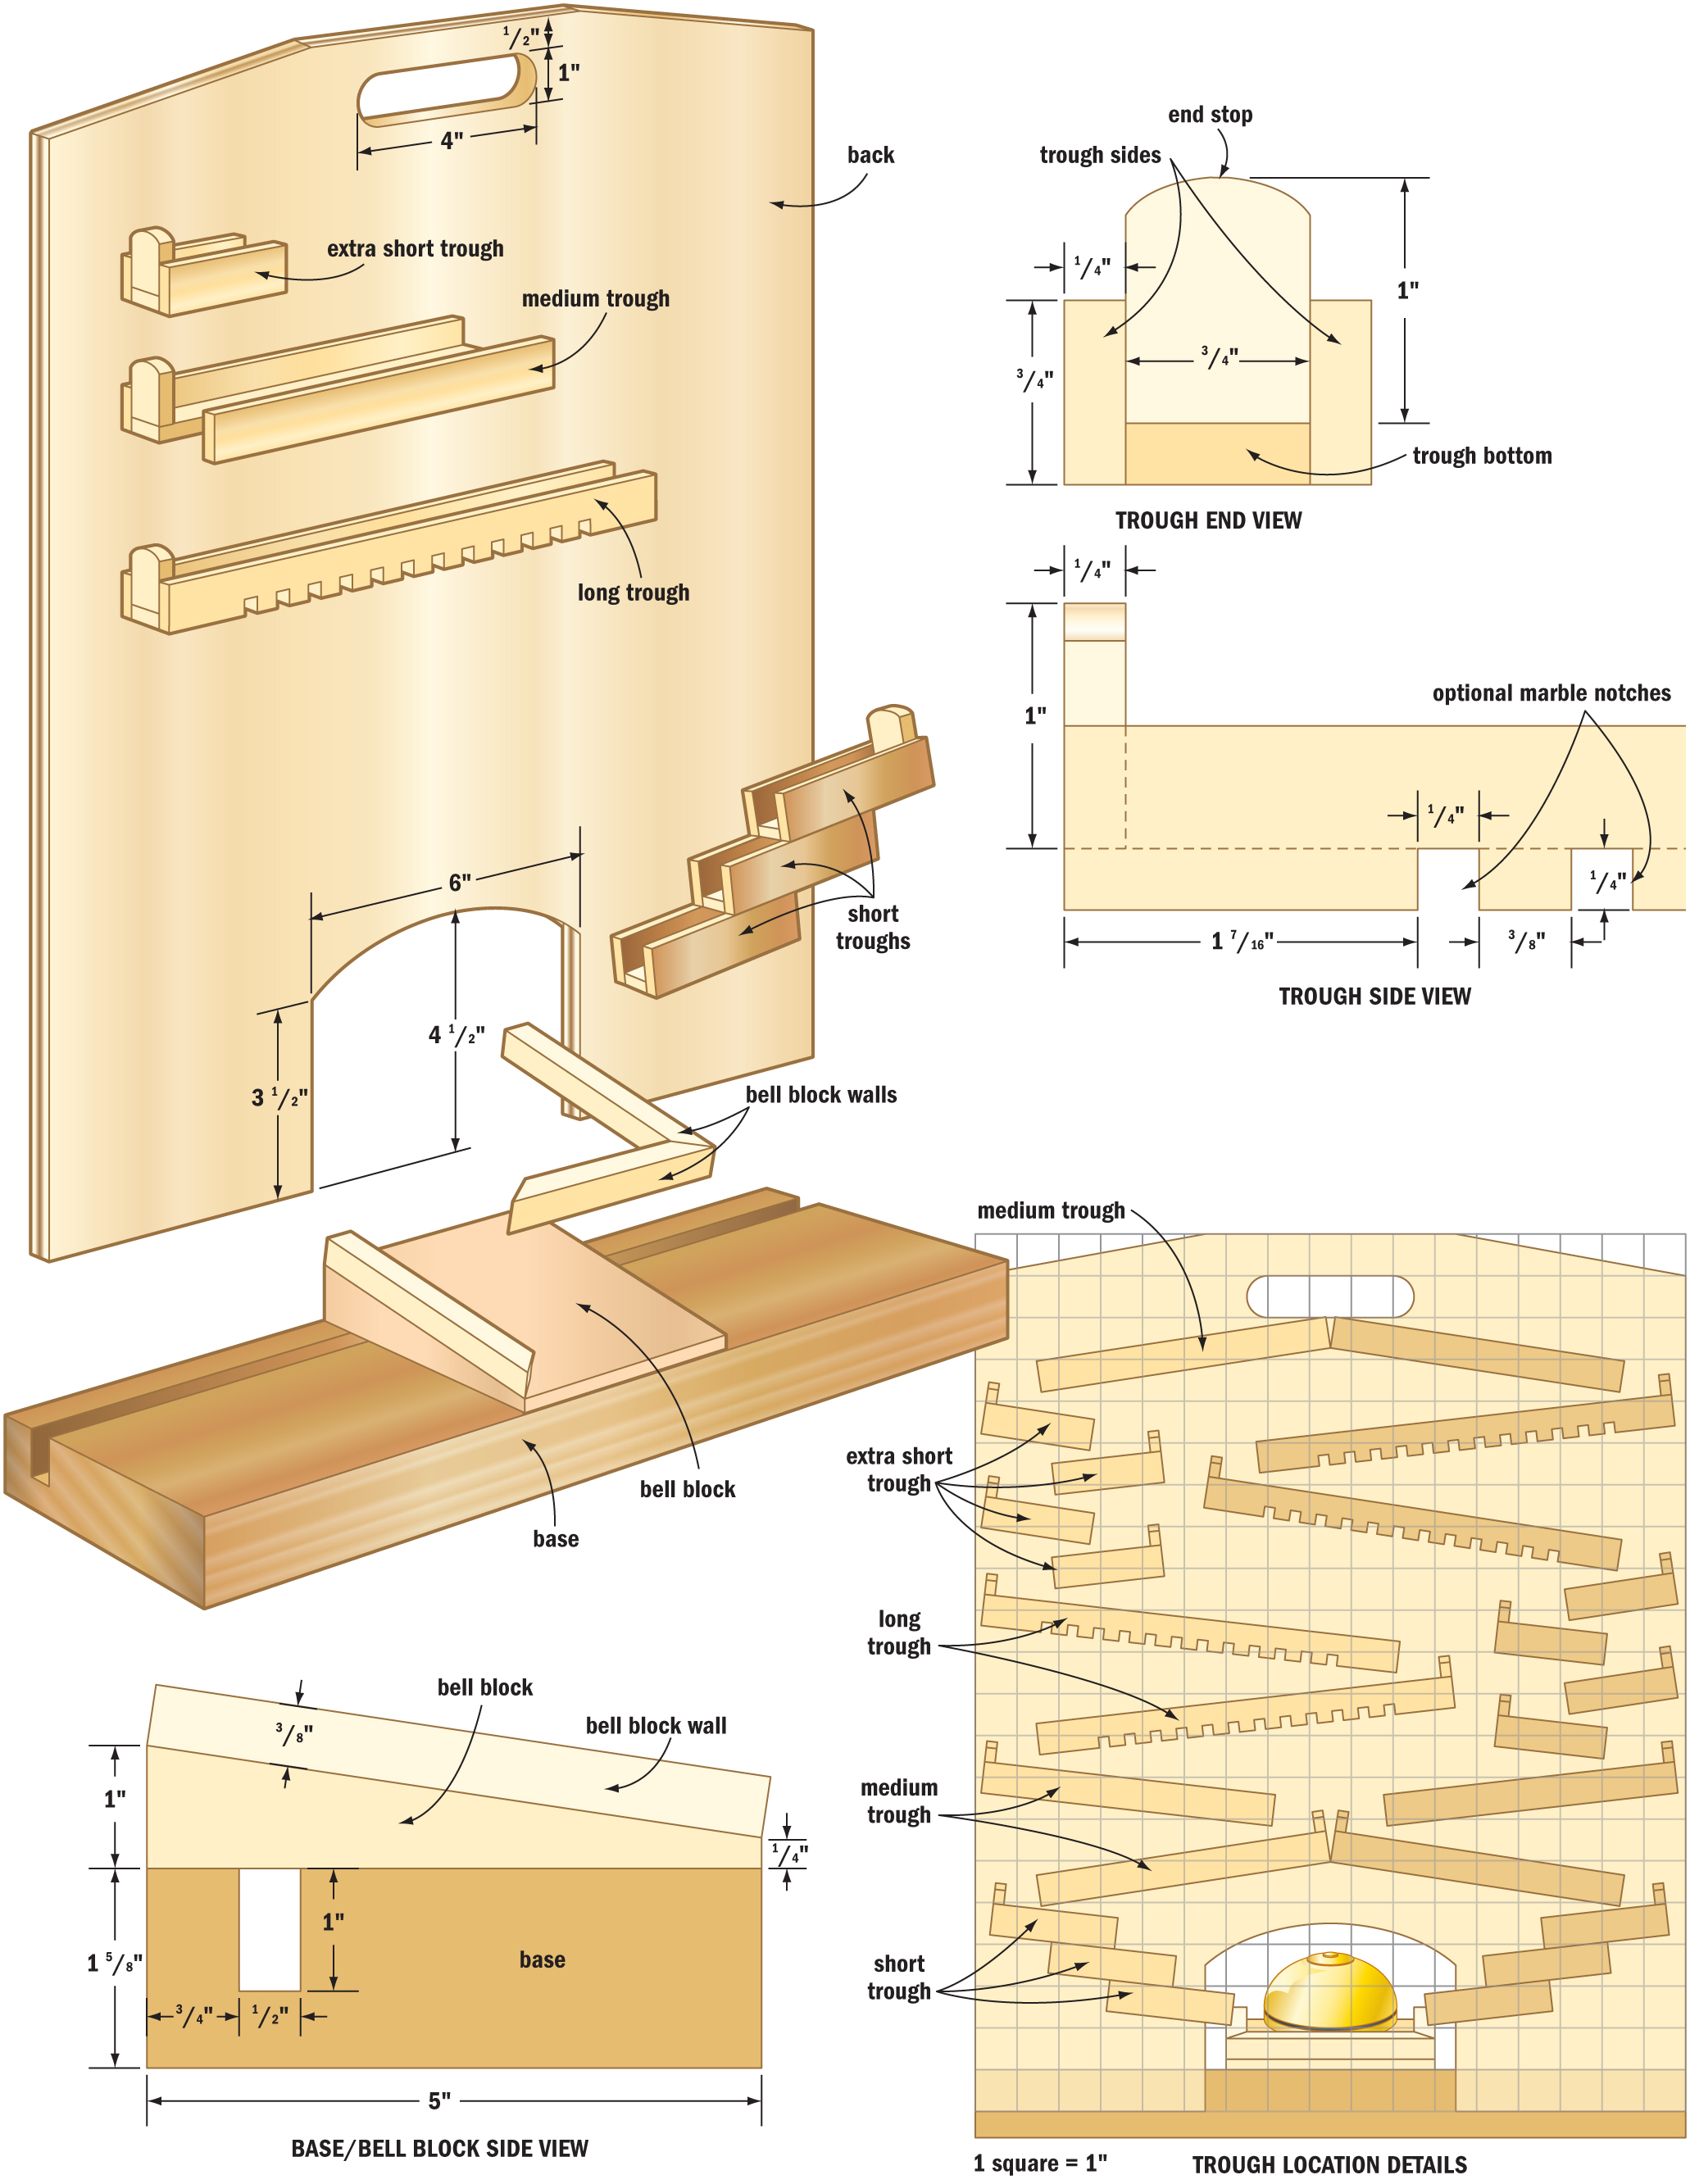 Reclaimed Wood Toy Box Plans, Reclaimed, Free Engine Image For User ...